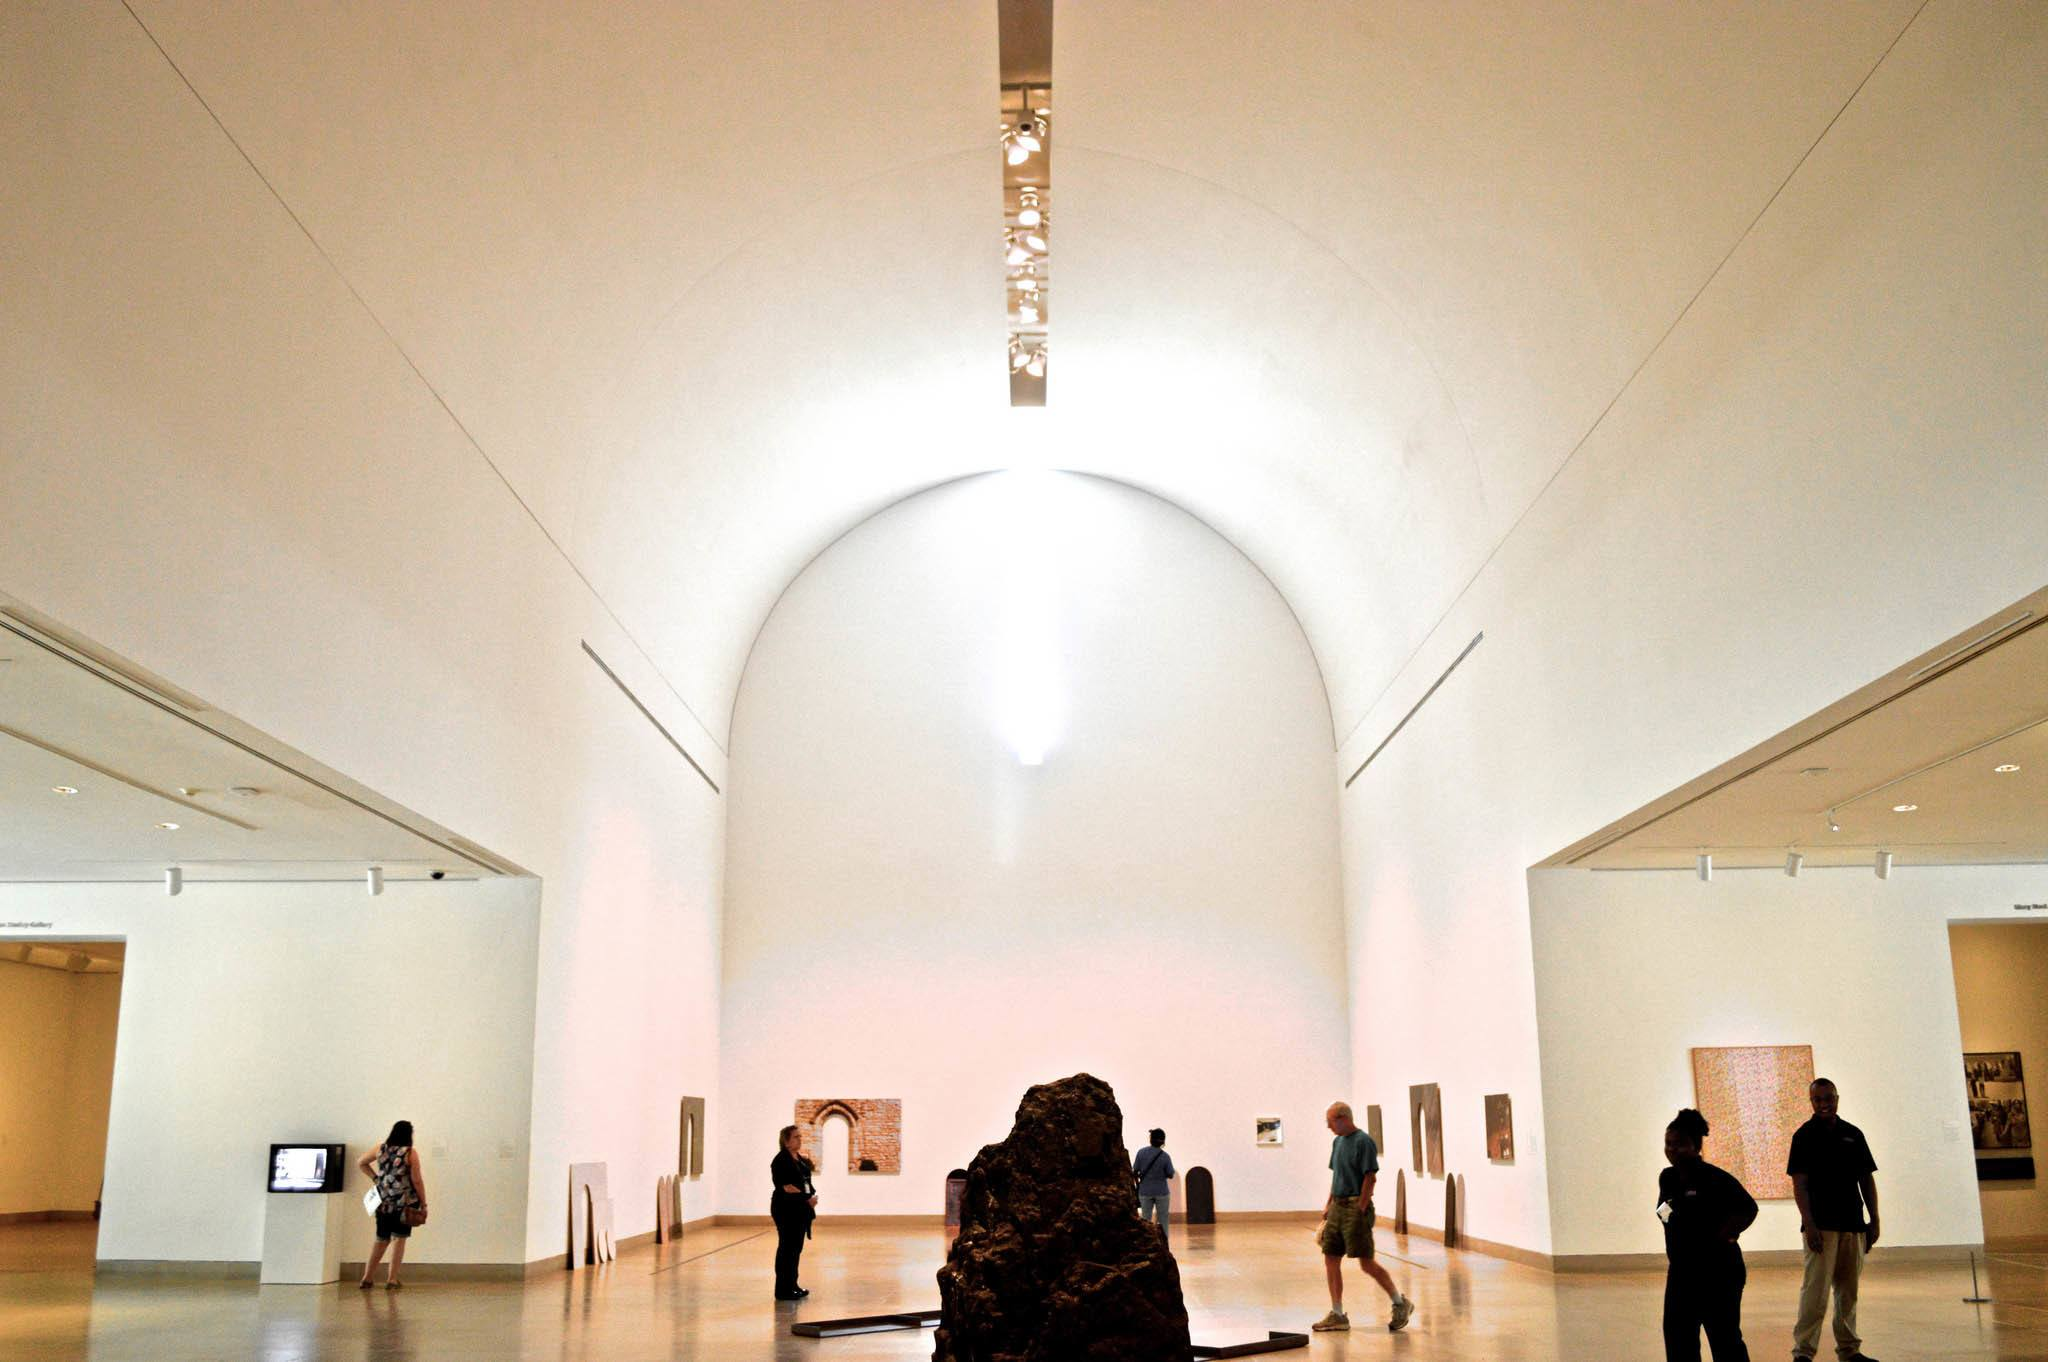 Interior of the Dallas Museum of Art with paintings and visitors